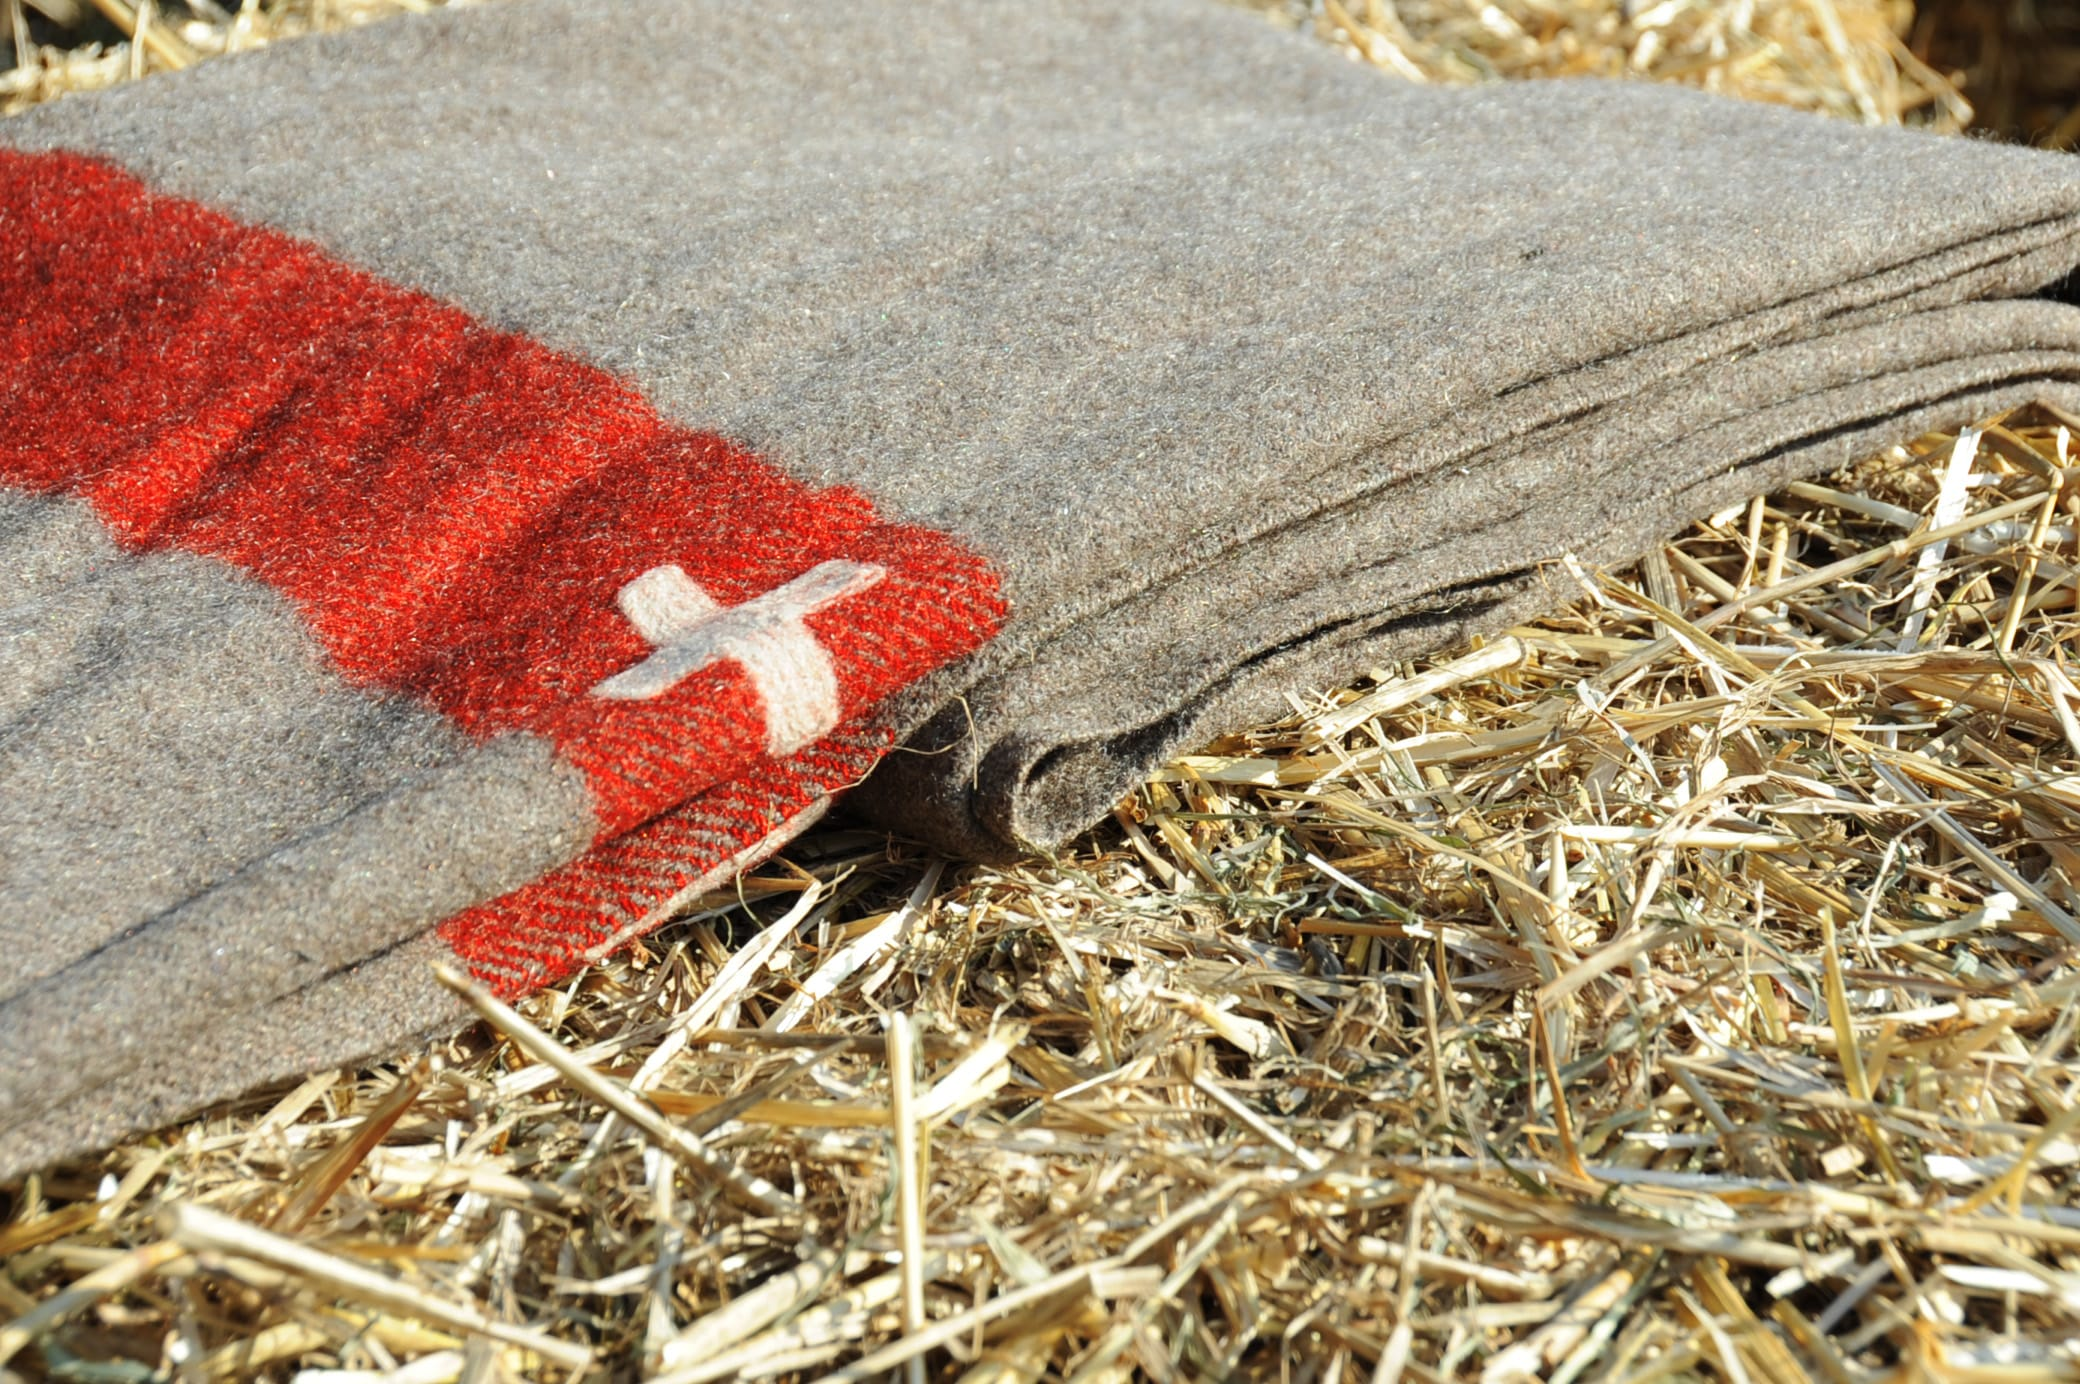 Swiss Army blankets